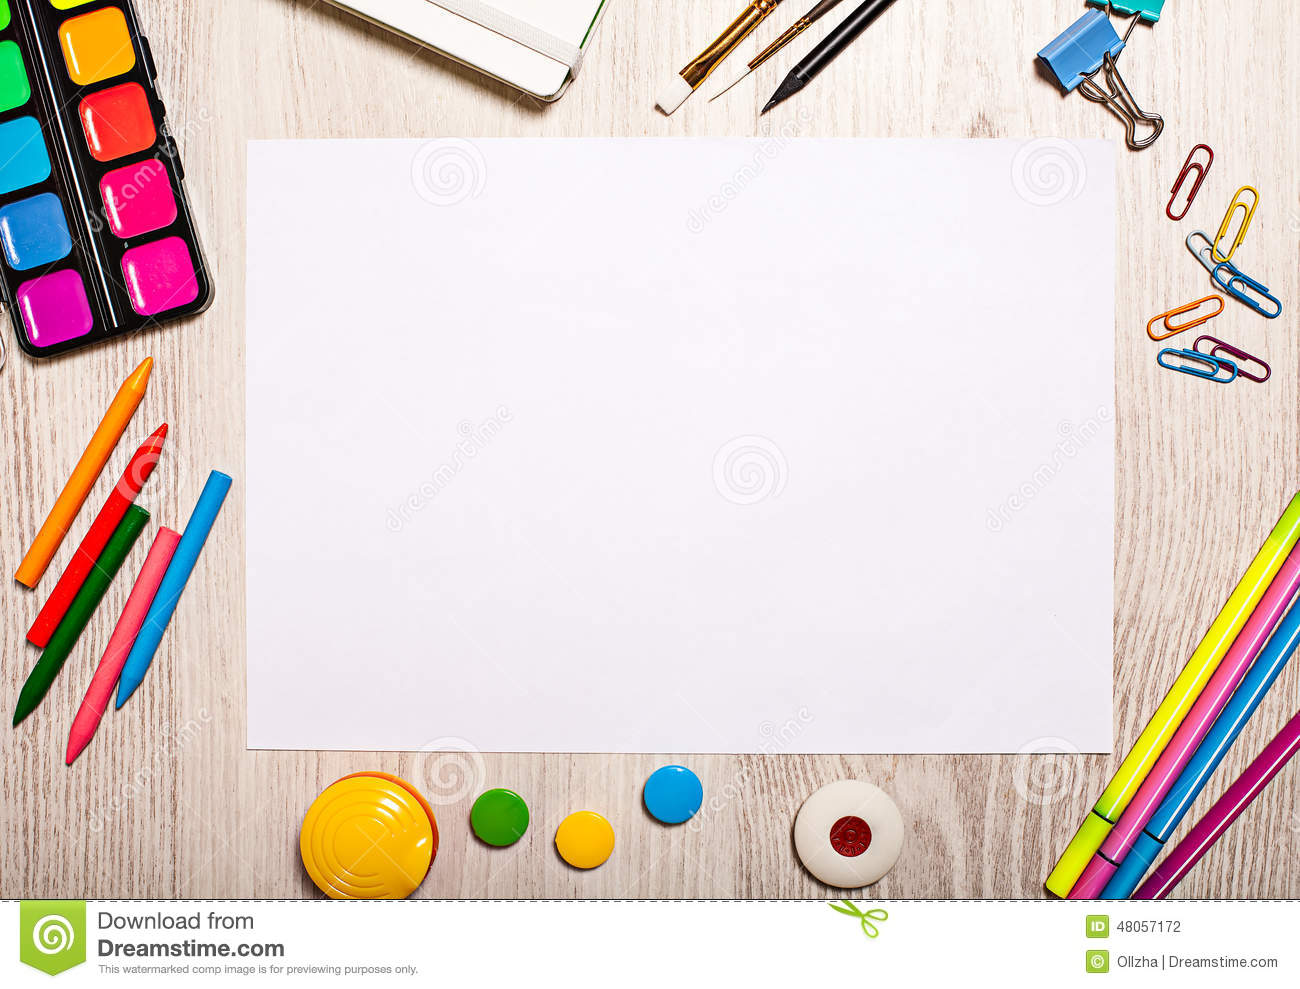 Blank Page Mockup On Table With Office Tools Stock Photo - Image ...